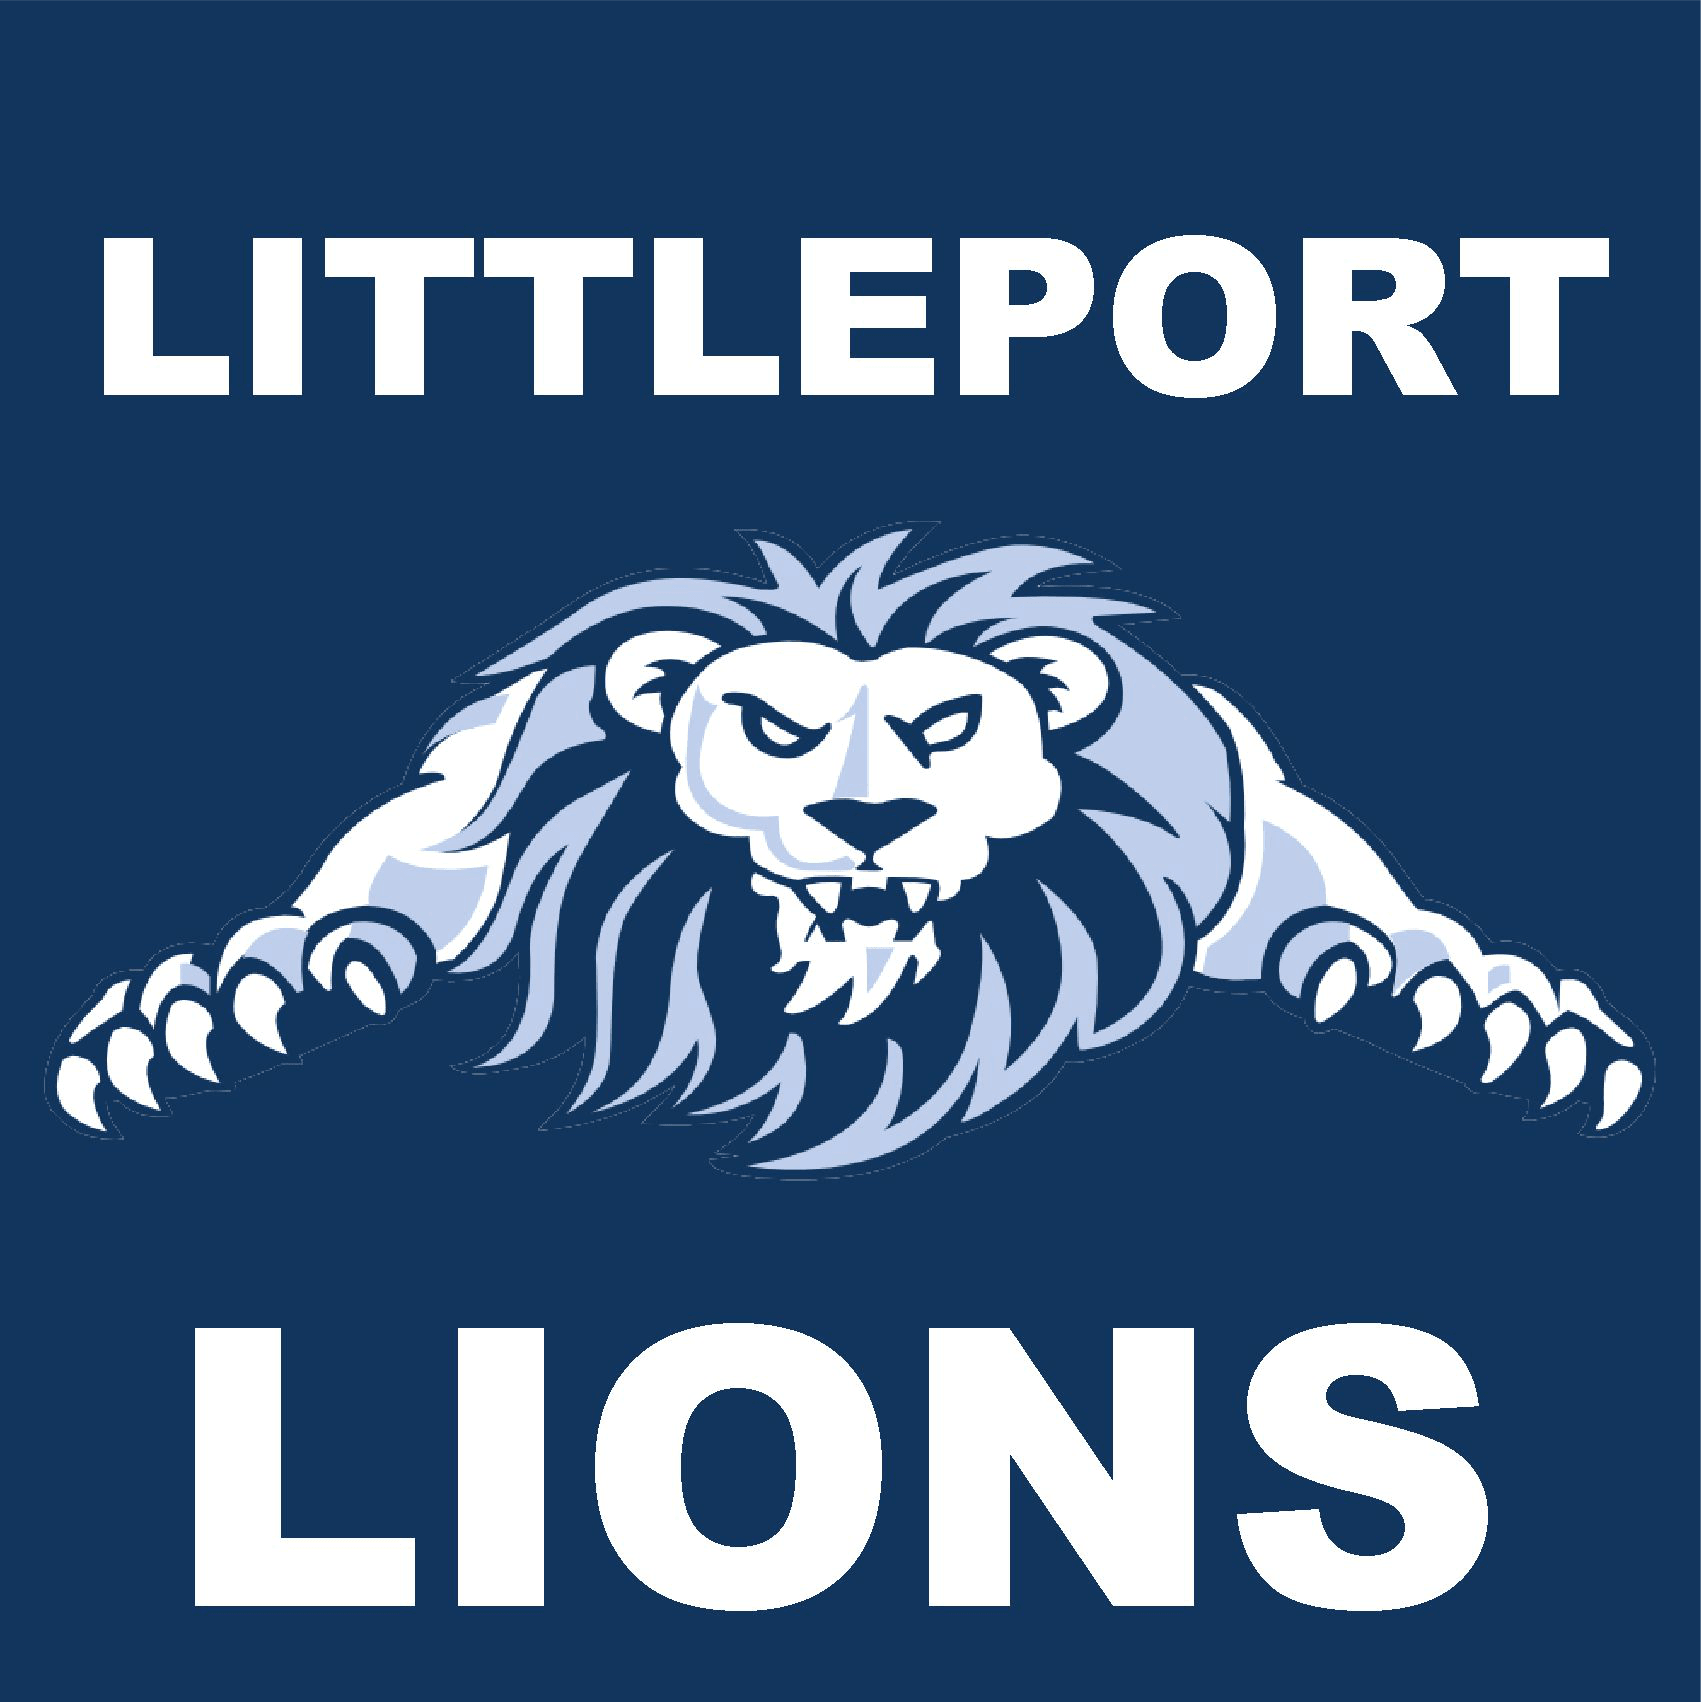 Littleport lions korfball logo sigma embroidery